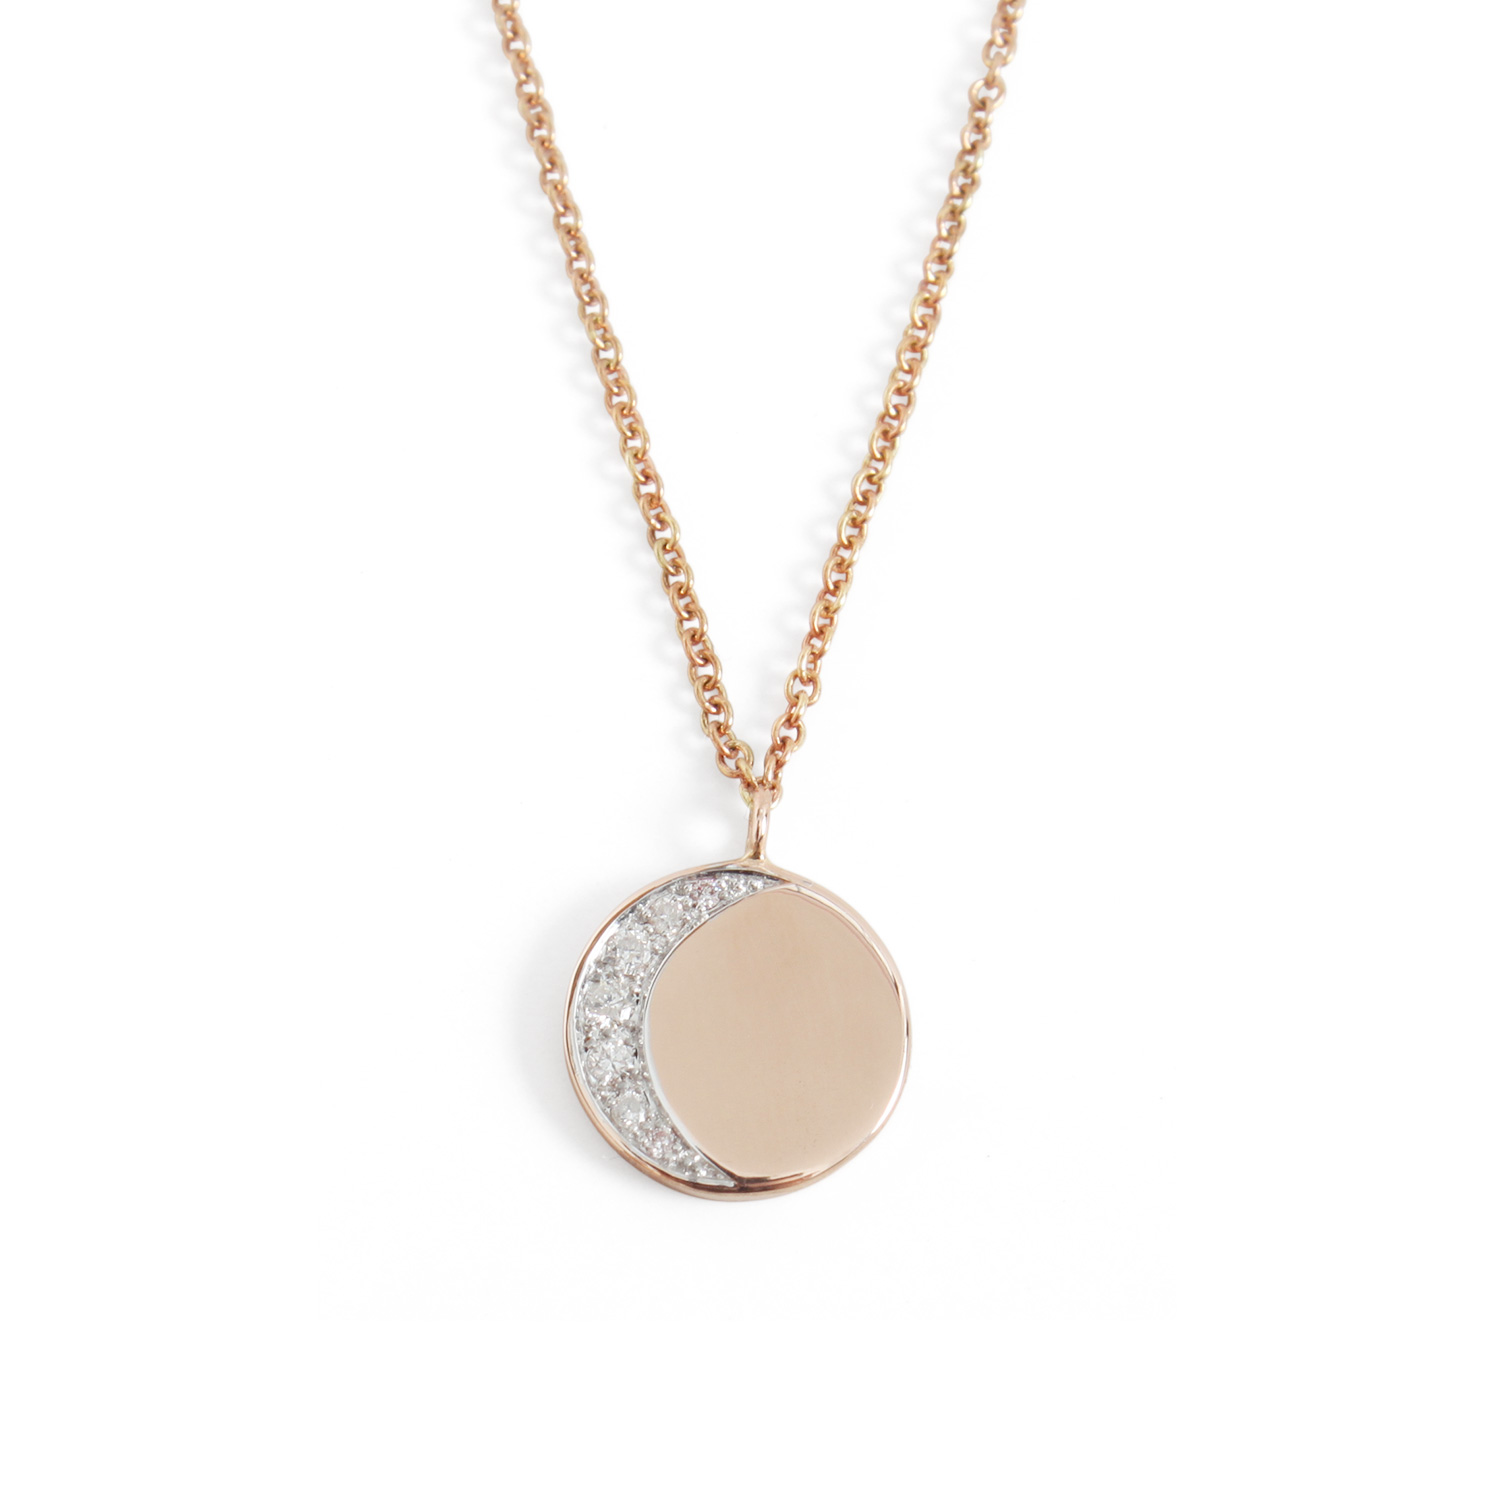 hammered disc connection htm pendant accessories collections necklace sjjia french gold product woman